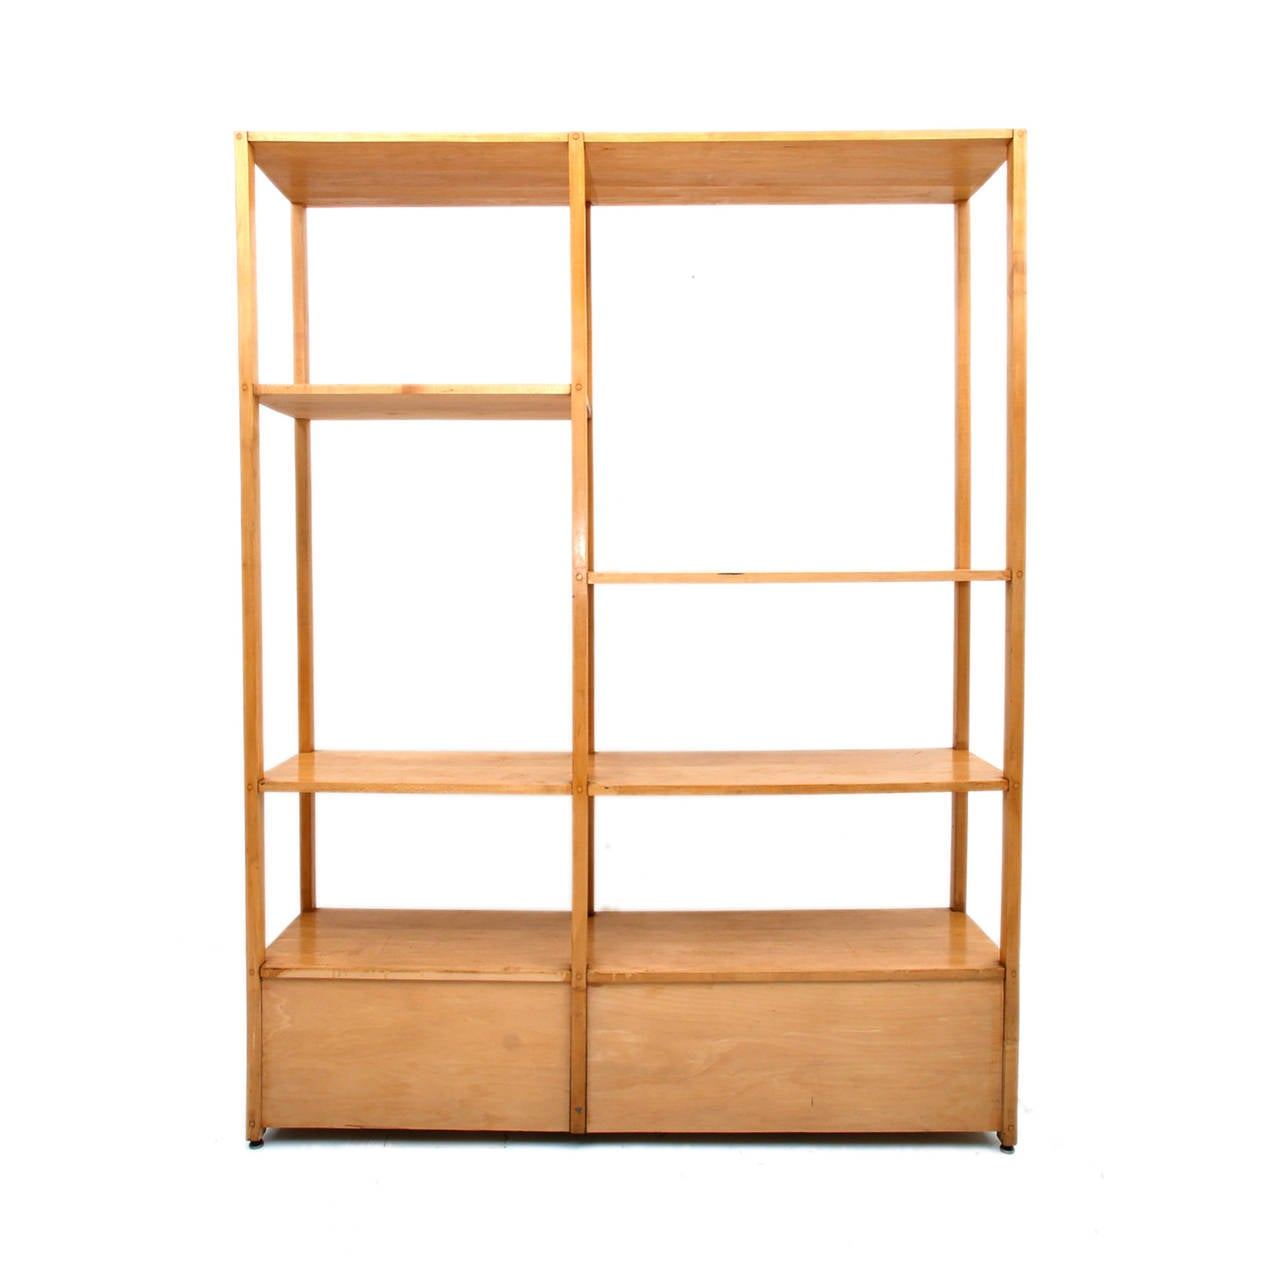 Paul mccobb shelving unit room divider planner group at for Room divider storage